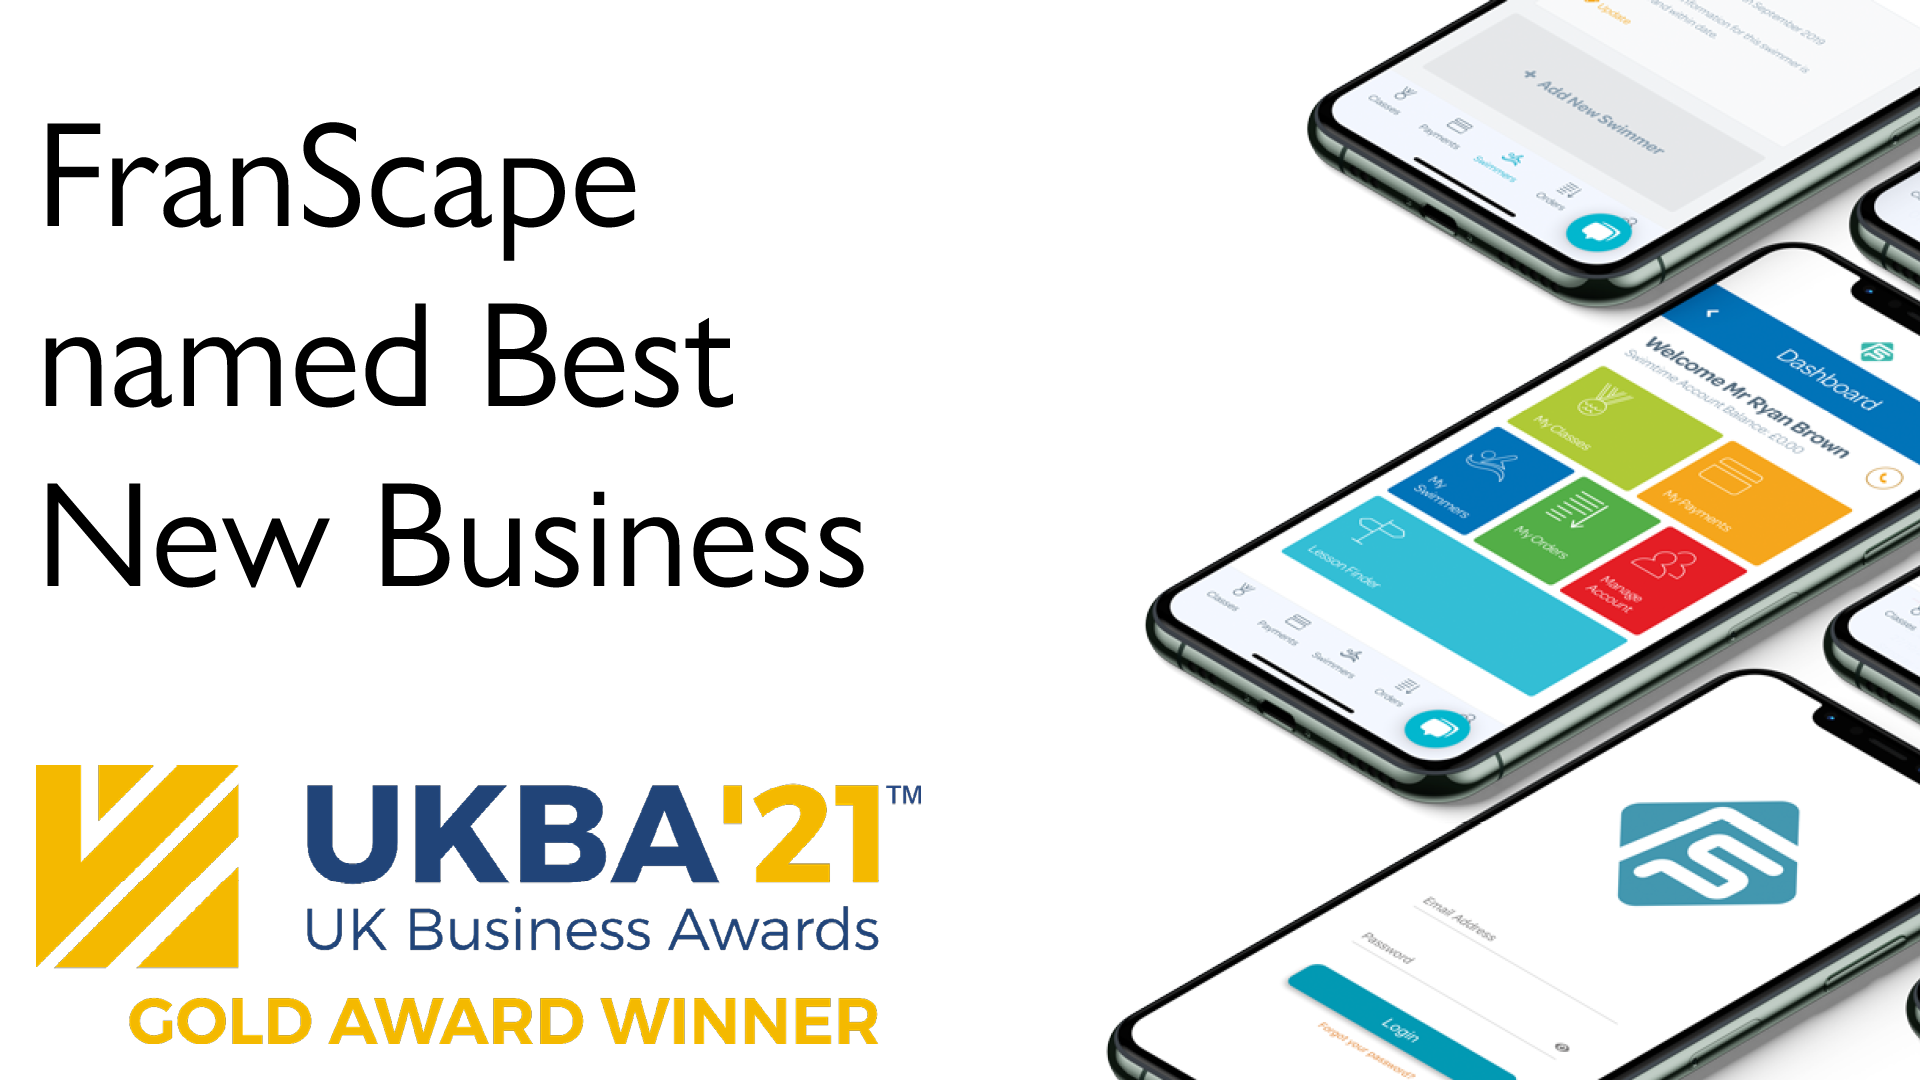 Technology company FranScape named Best New Business at Prestigious Business Awards